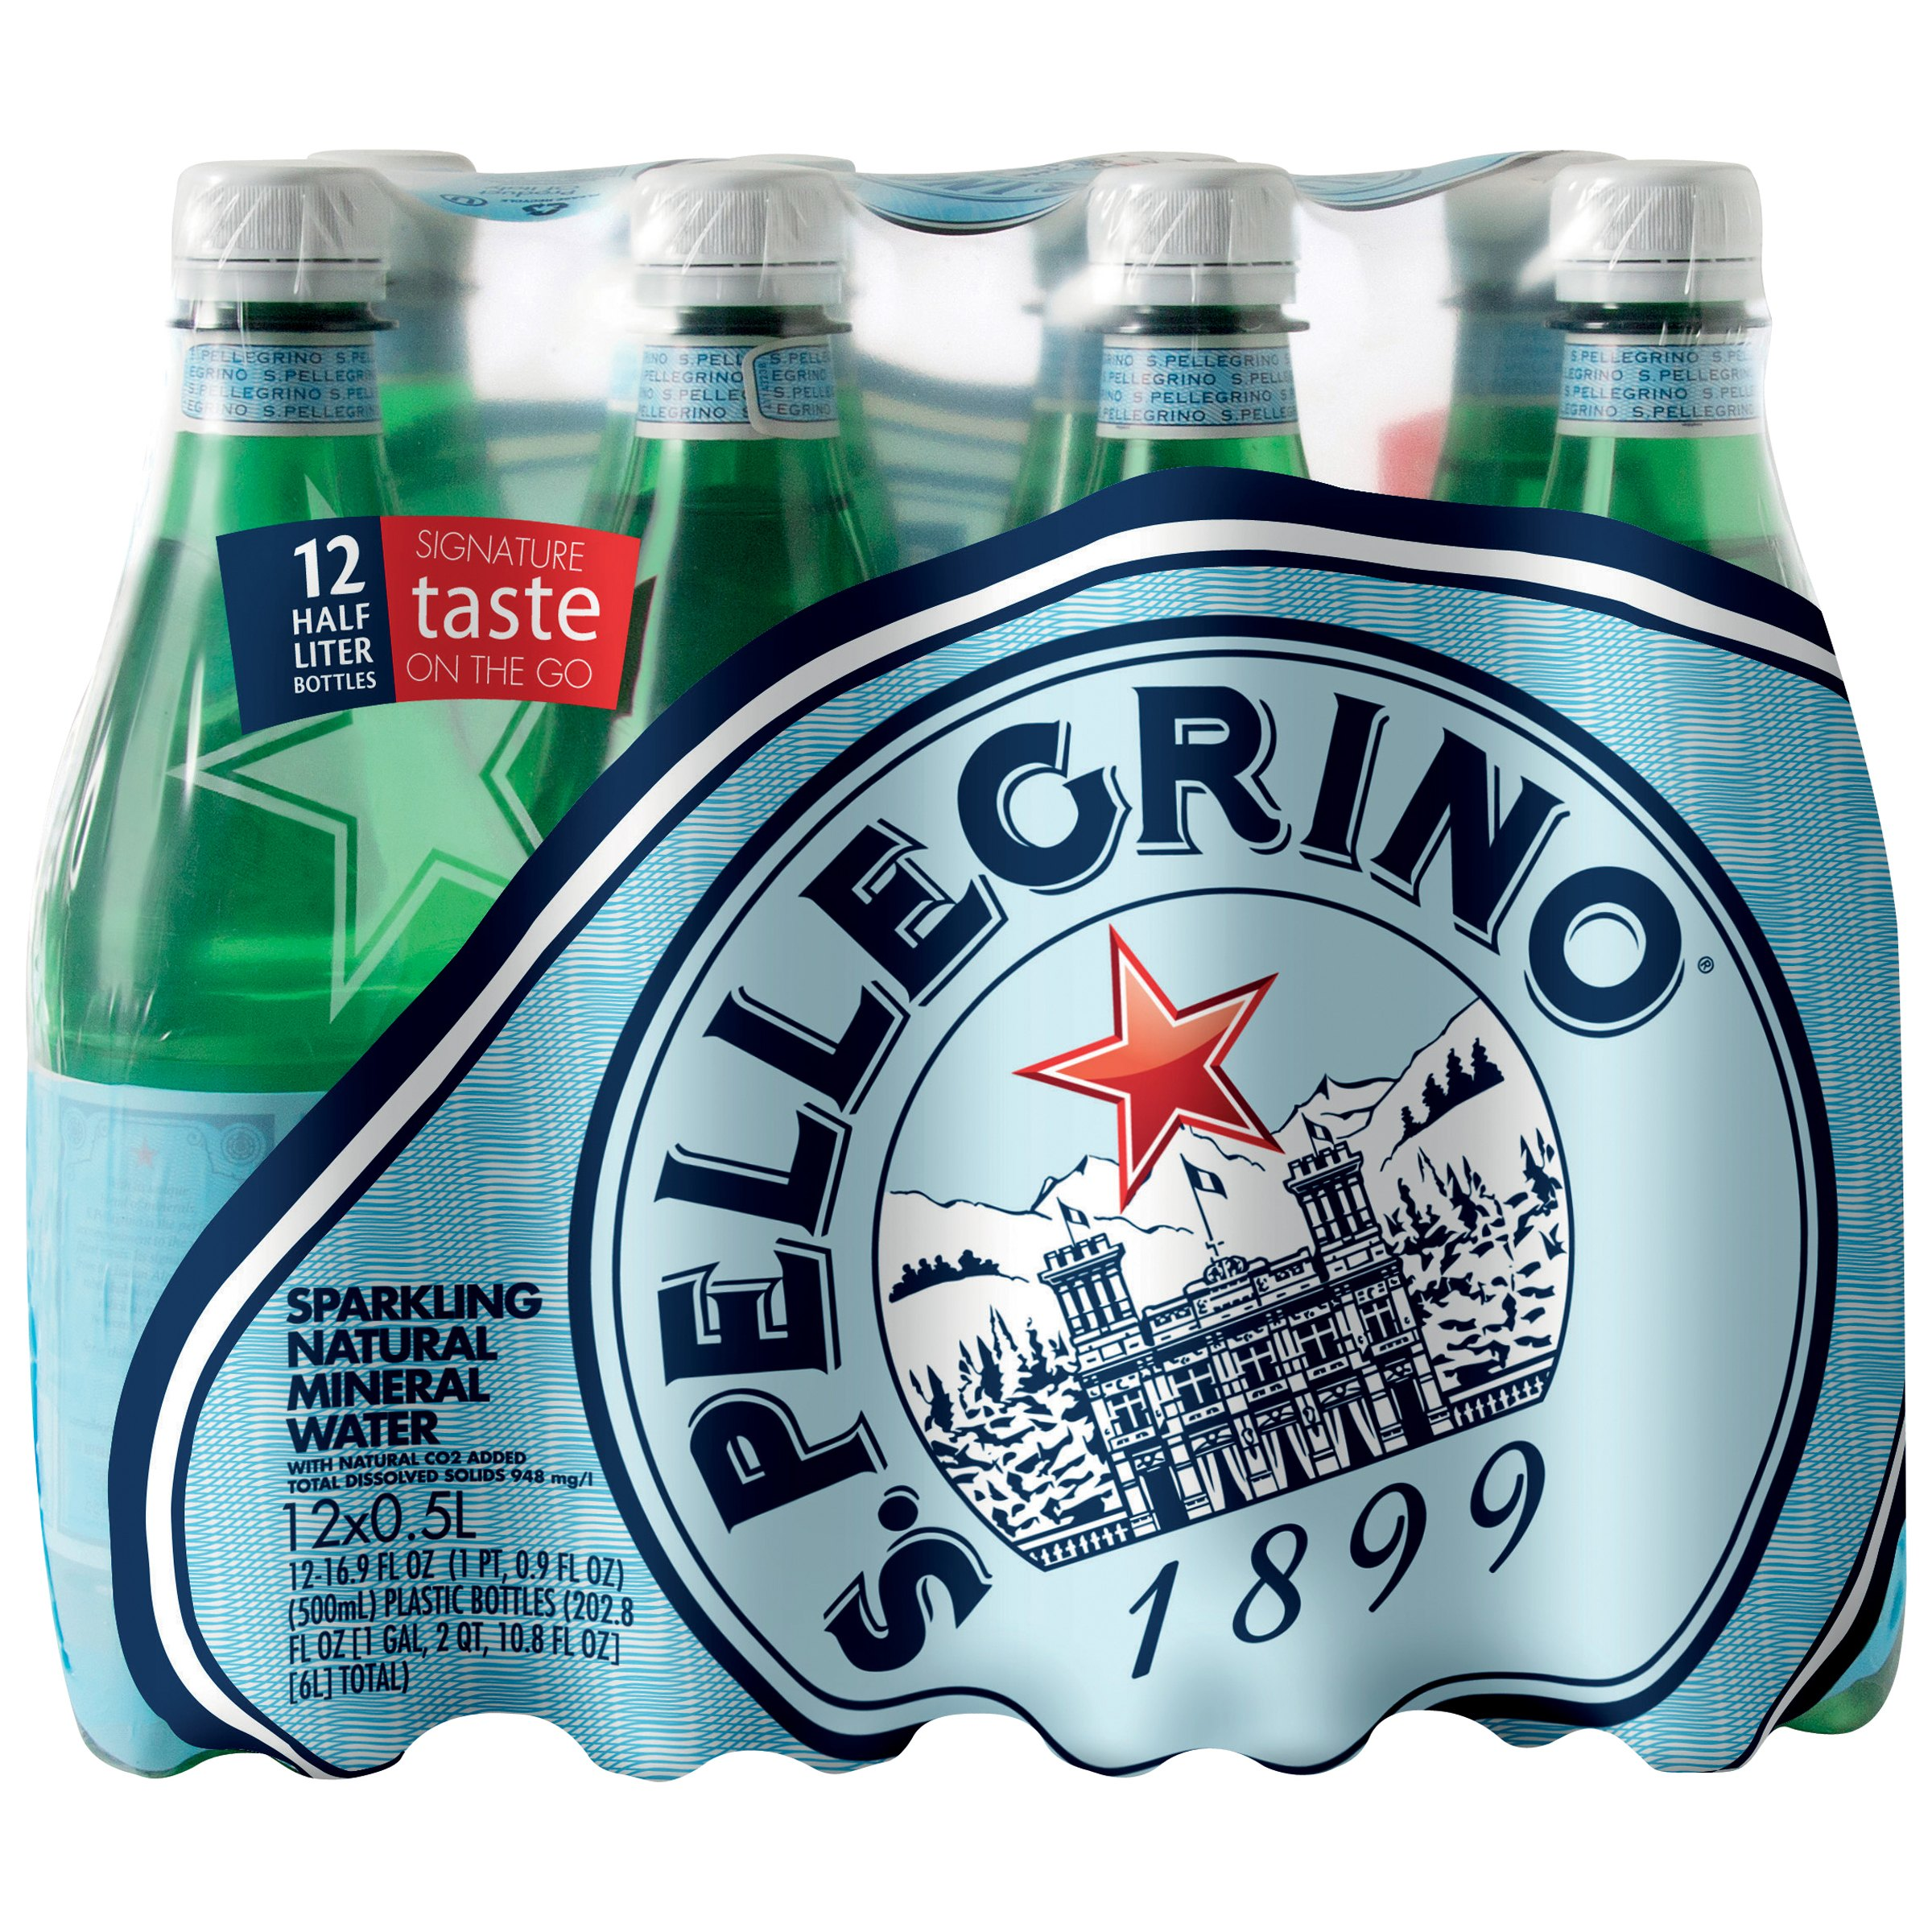 S.Pellegrino Sparkling Natural Mineral Water, 16.9-ounce plastic bottles (Pack of 12)